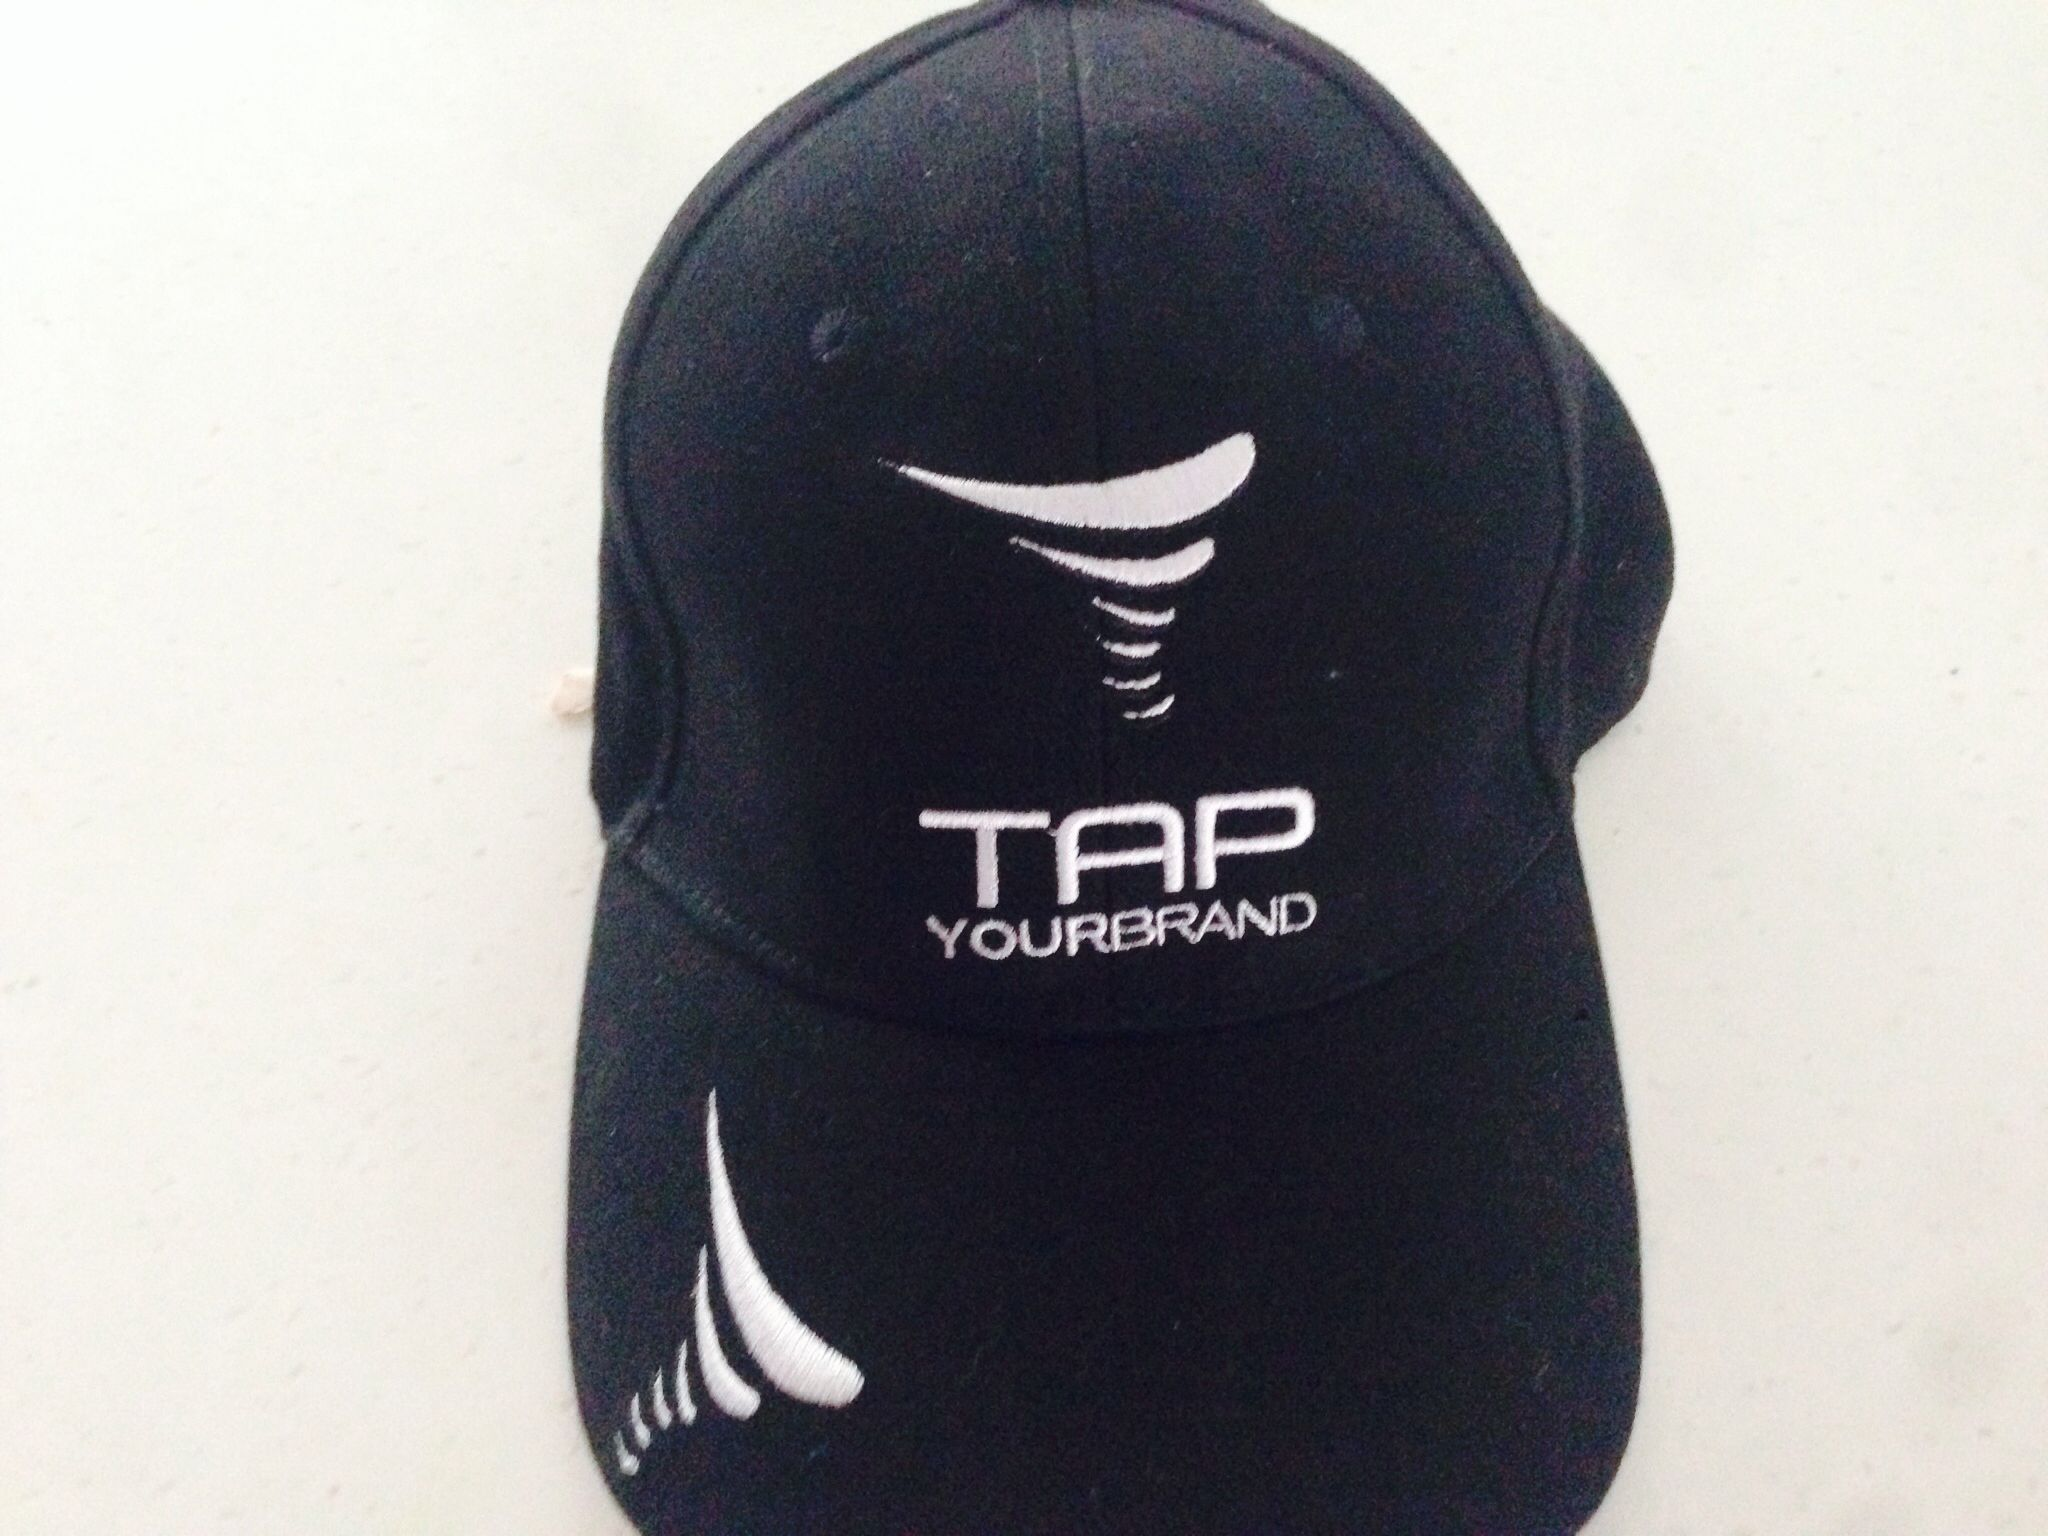 TapWear is our wearable technology line that allows us to make SMART merchandise. TapWear consists of hats, shirts, bracelets, buttons and more!!